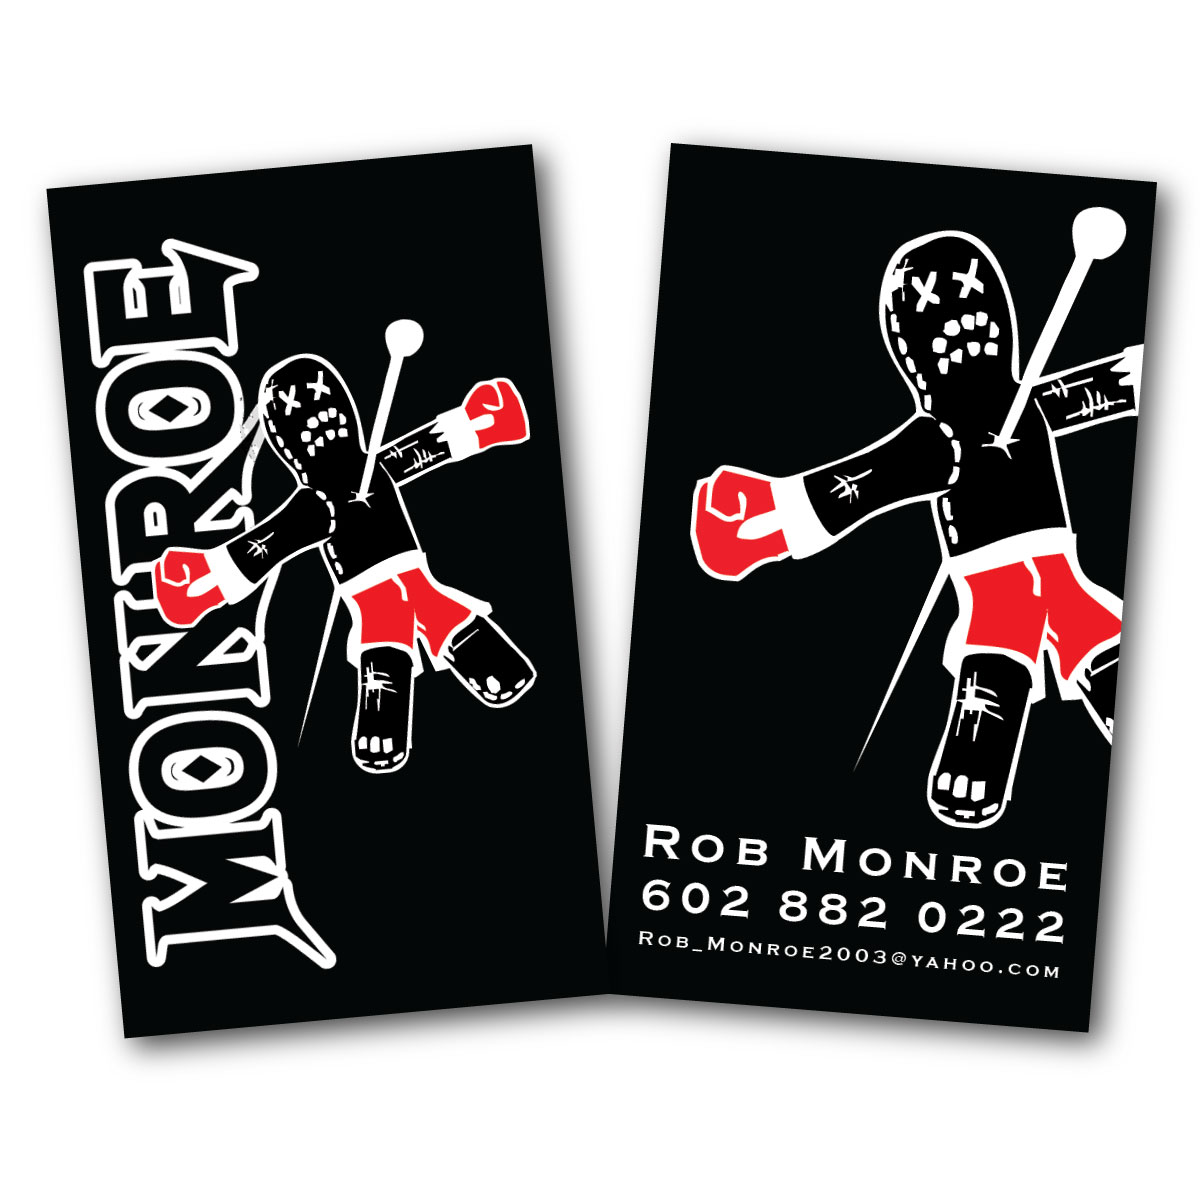 ROB_MONROE_BUSINESS_CARD